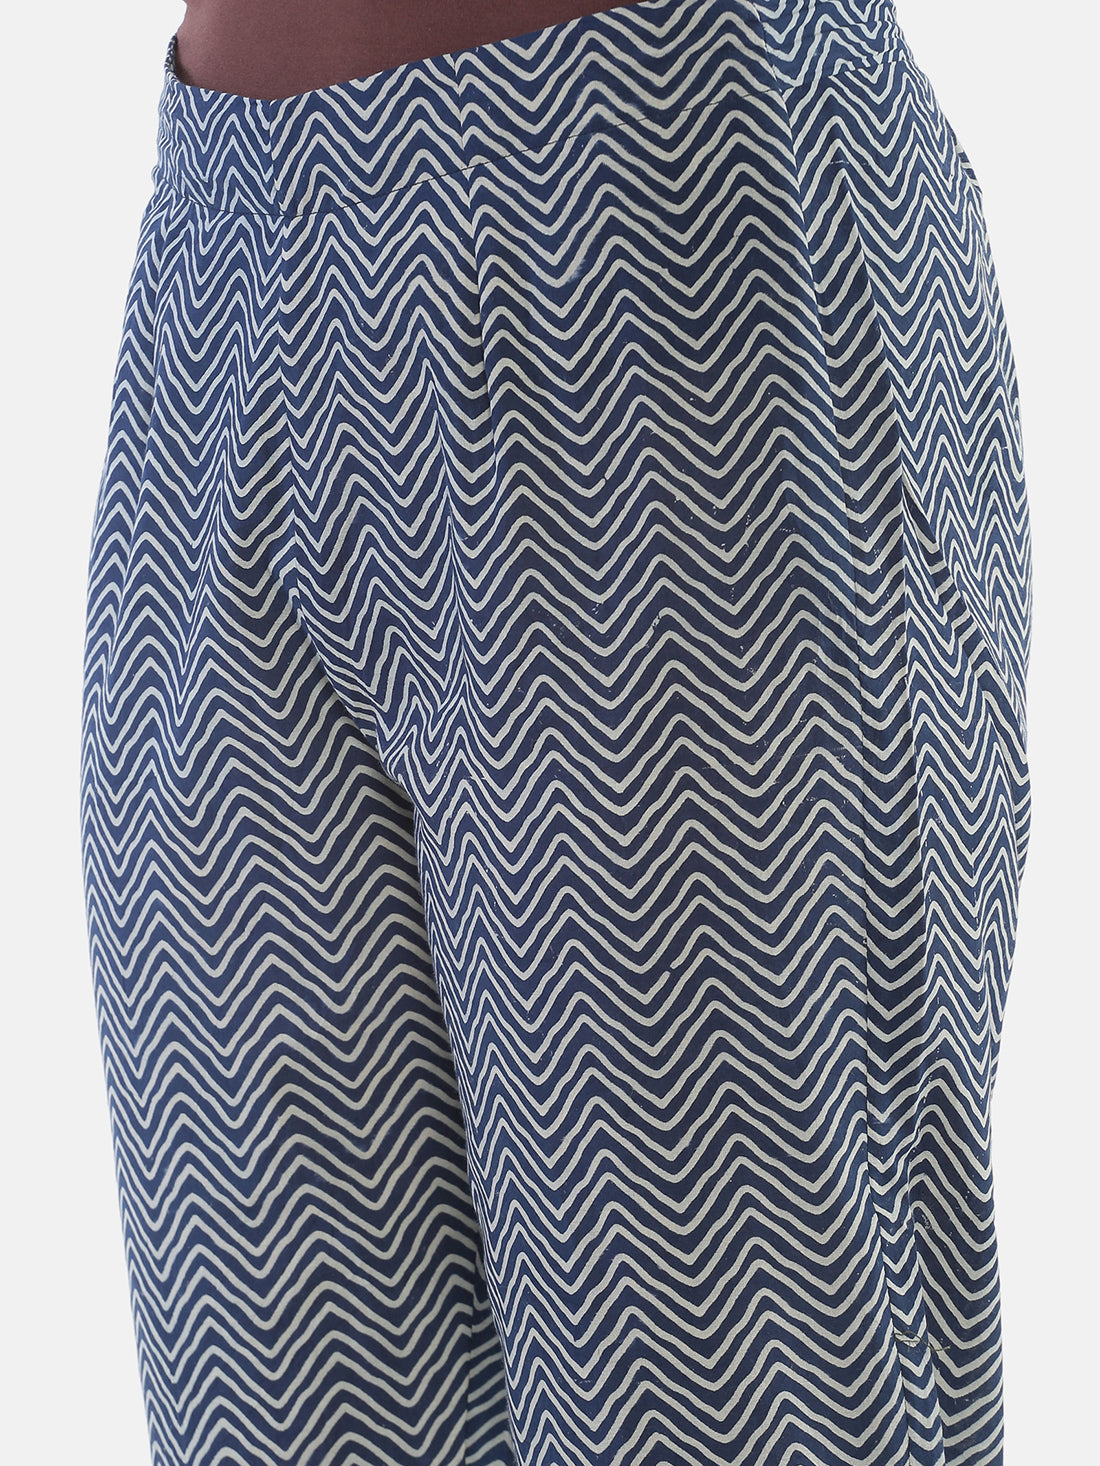 Indigo Naturally Dyed Cotton Chevron Hand Block Printed Cropped Cigarette Pants